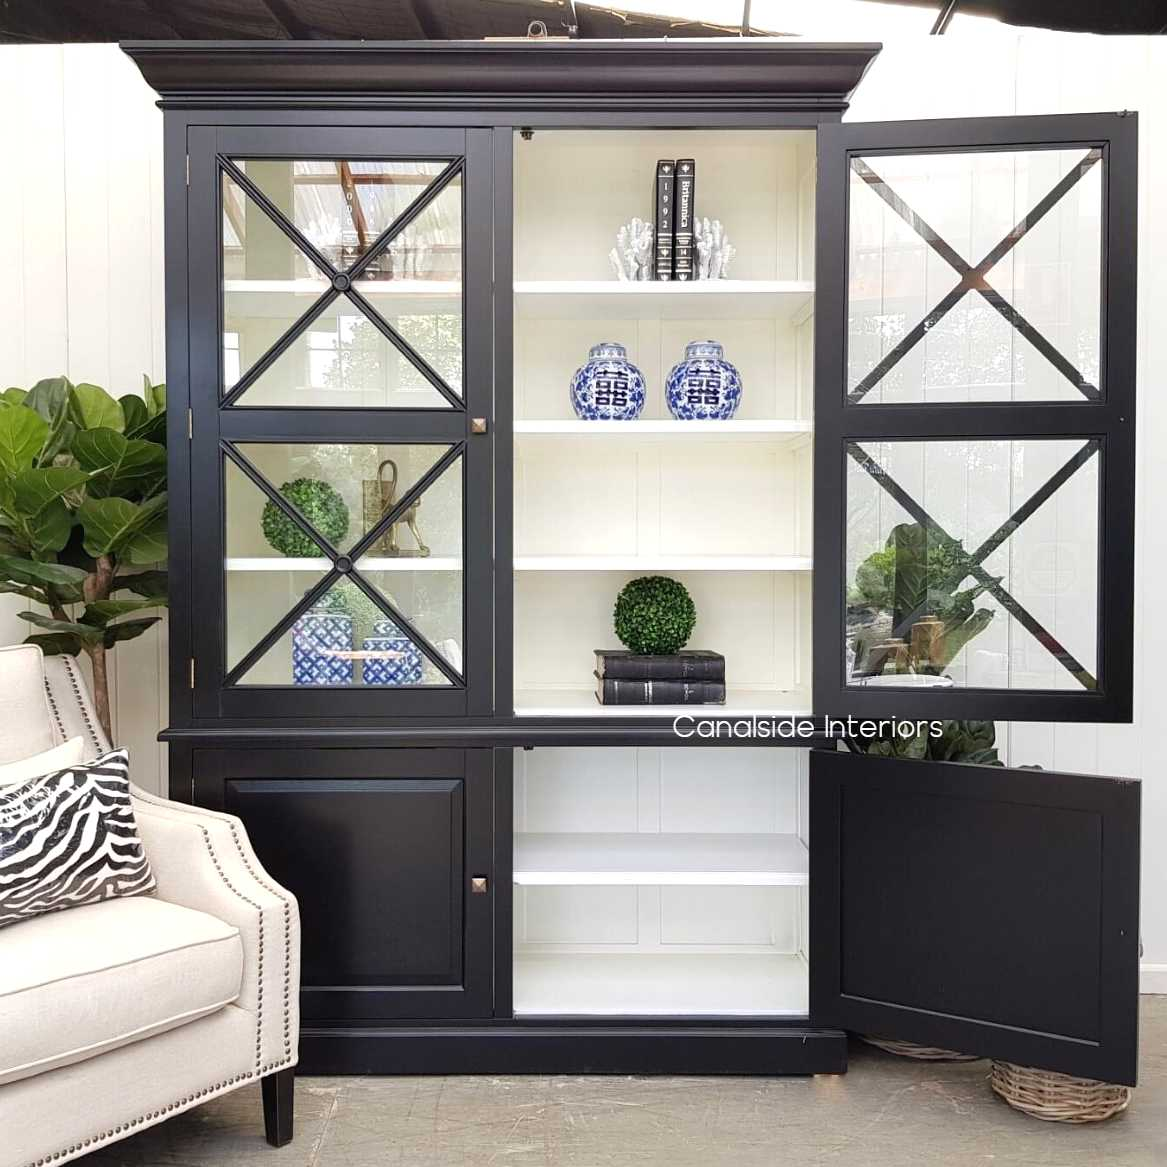 South Hamptons 2 Door Wall Unit Black with White Interior  FRENCH  FURNITURE, HAMPTONS Style, PLANTATION Style, LIVING Room, LIVING Cupboards & Bookcases, STORAGE, STORAGE Bookshelves & Cupboards